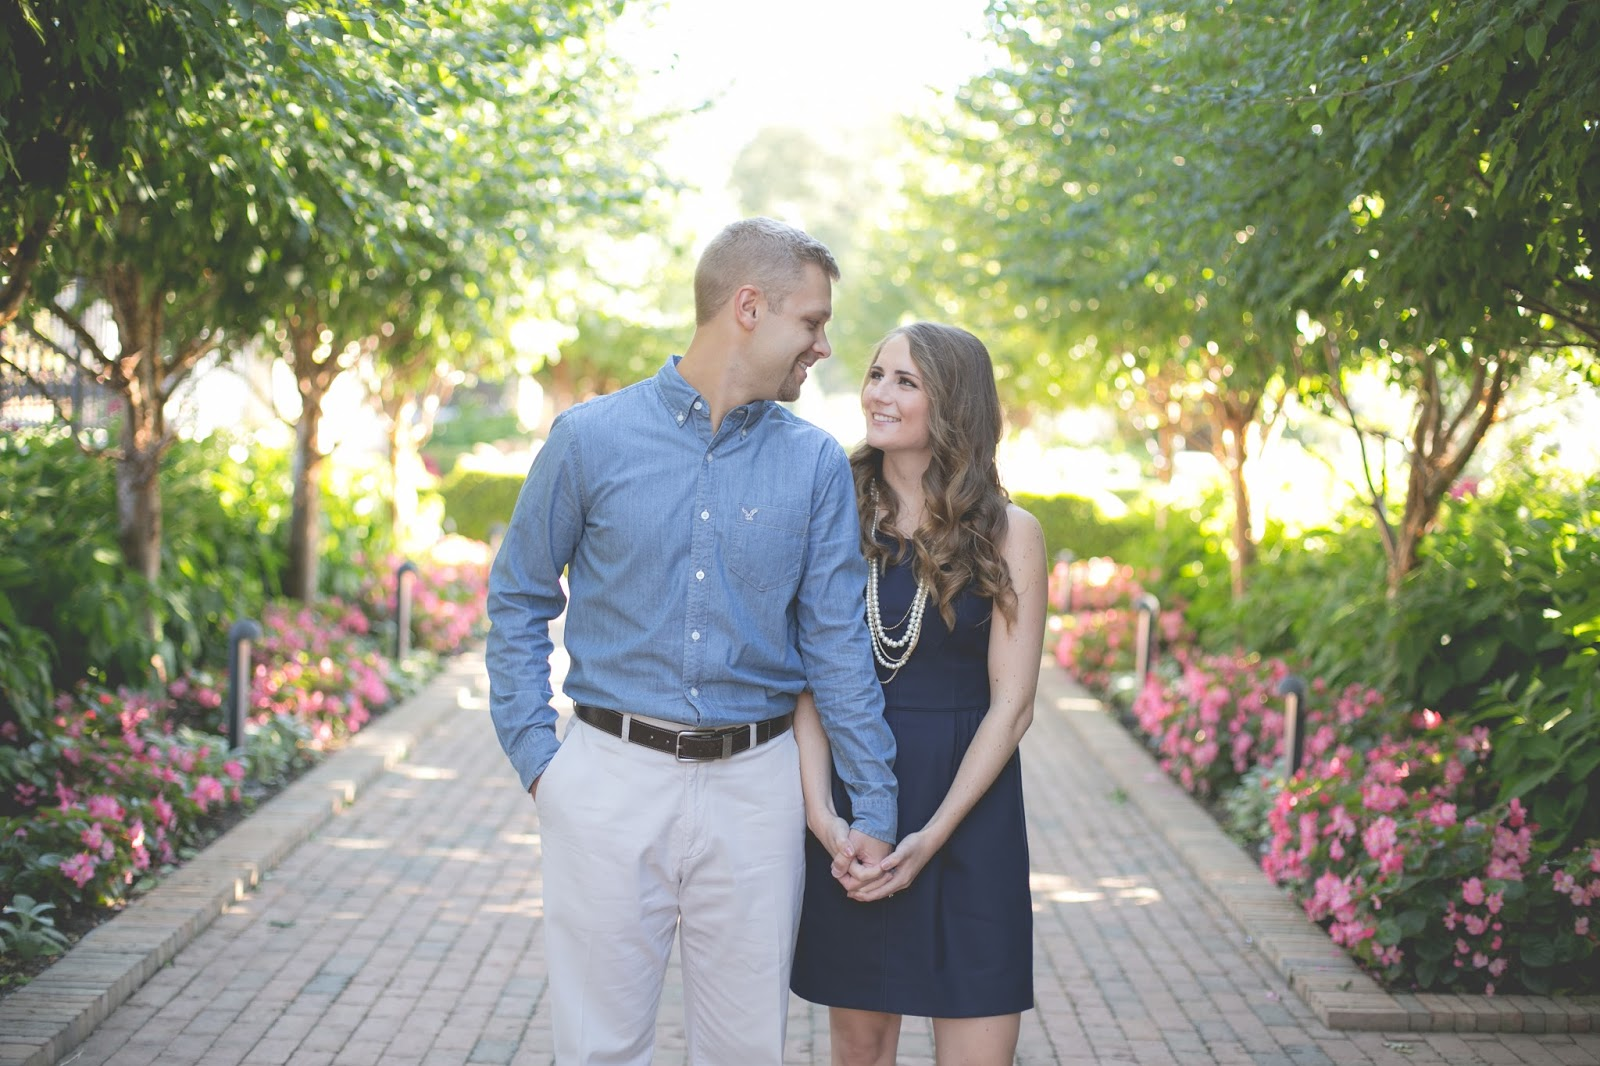 what to wear for your engagement pictures| how to choose an outfit for engagement photos | kansas city engagement pictures | engagement pictures to get | kansas city fashion blog | a memory of us | engagement picture ideas | poses to do for engagement pictures | tina norman of in his image wedding photography